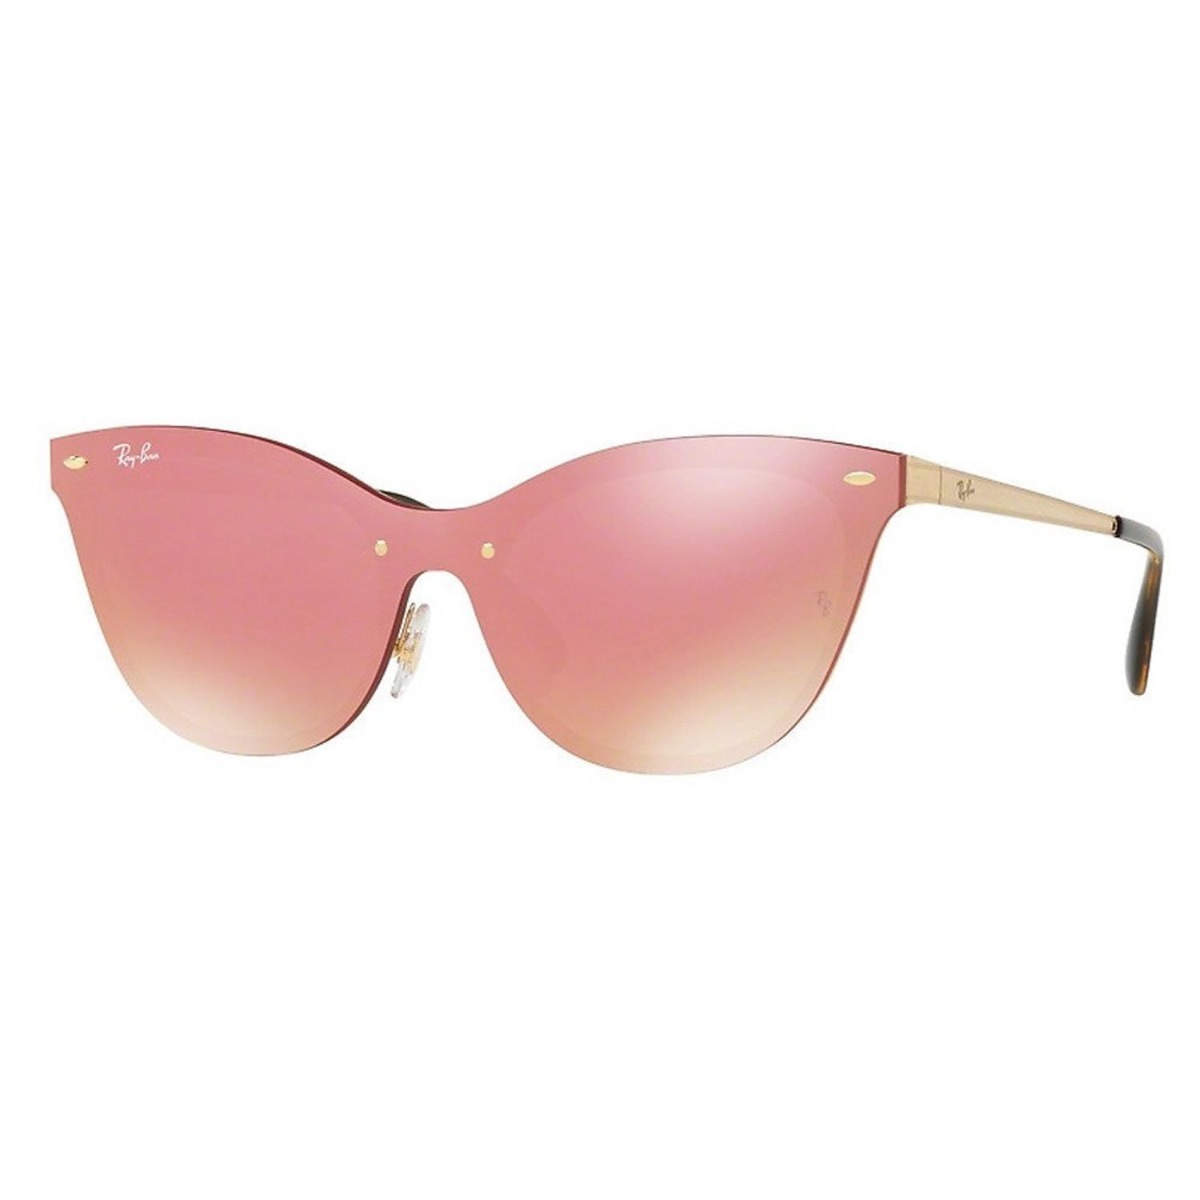 deed4ca47d Lentes Ray Ban Rb 3580n 043/e4 43 Cat Eye Oro / Rosa Espejo ...